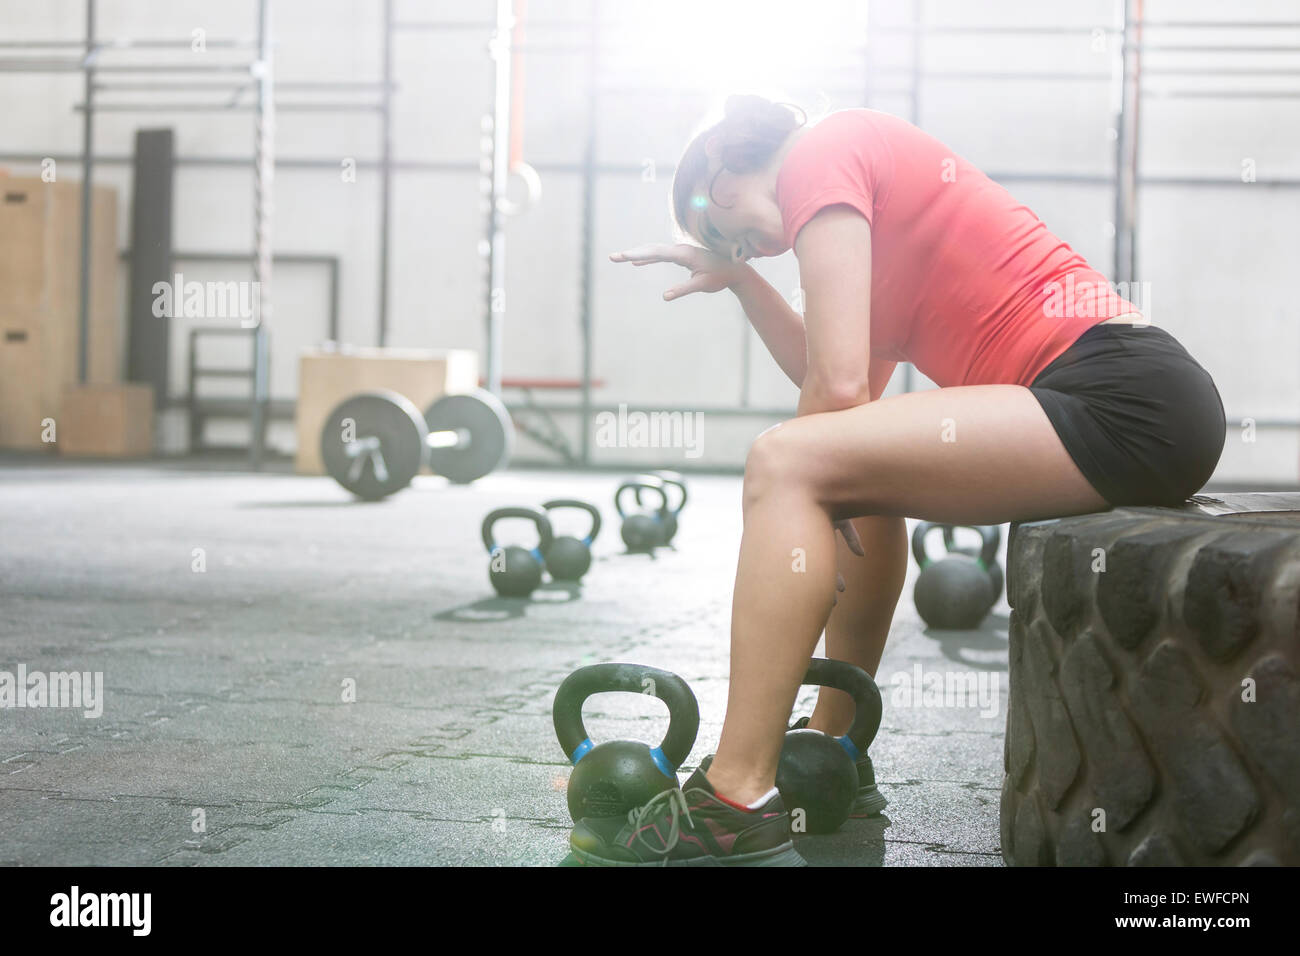 Exhausted woman sitting on tire in crossfit gym - Stock Image